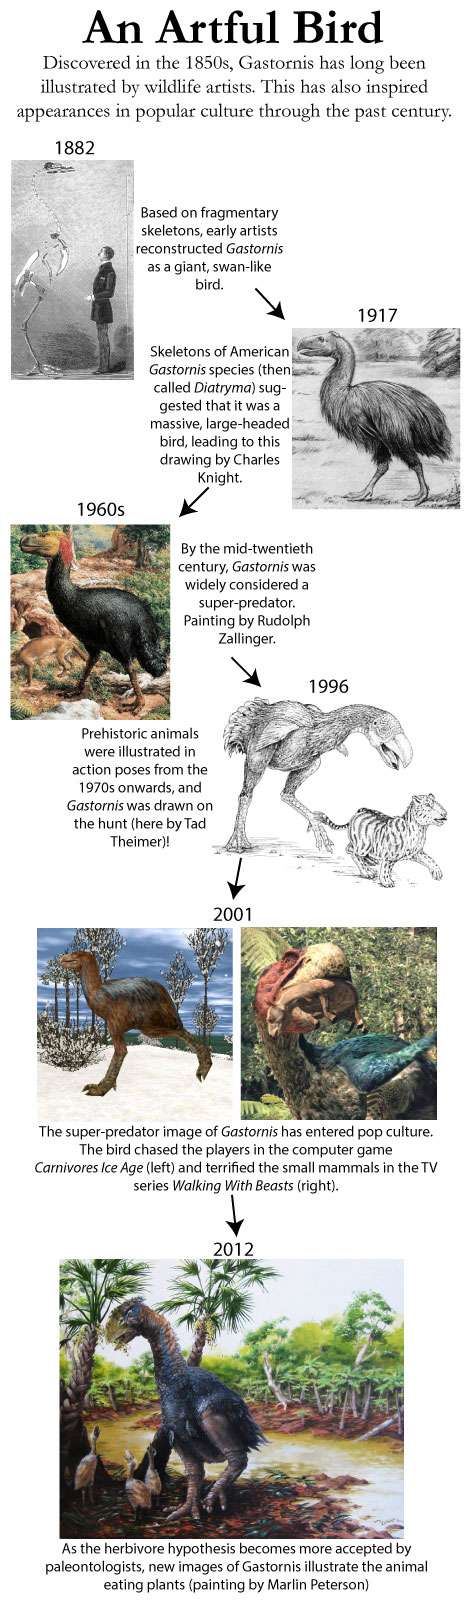 Gastornis Reconstructions and diet through history